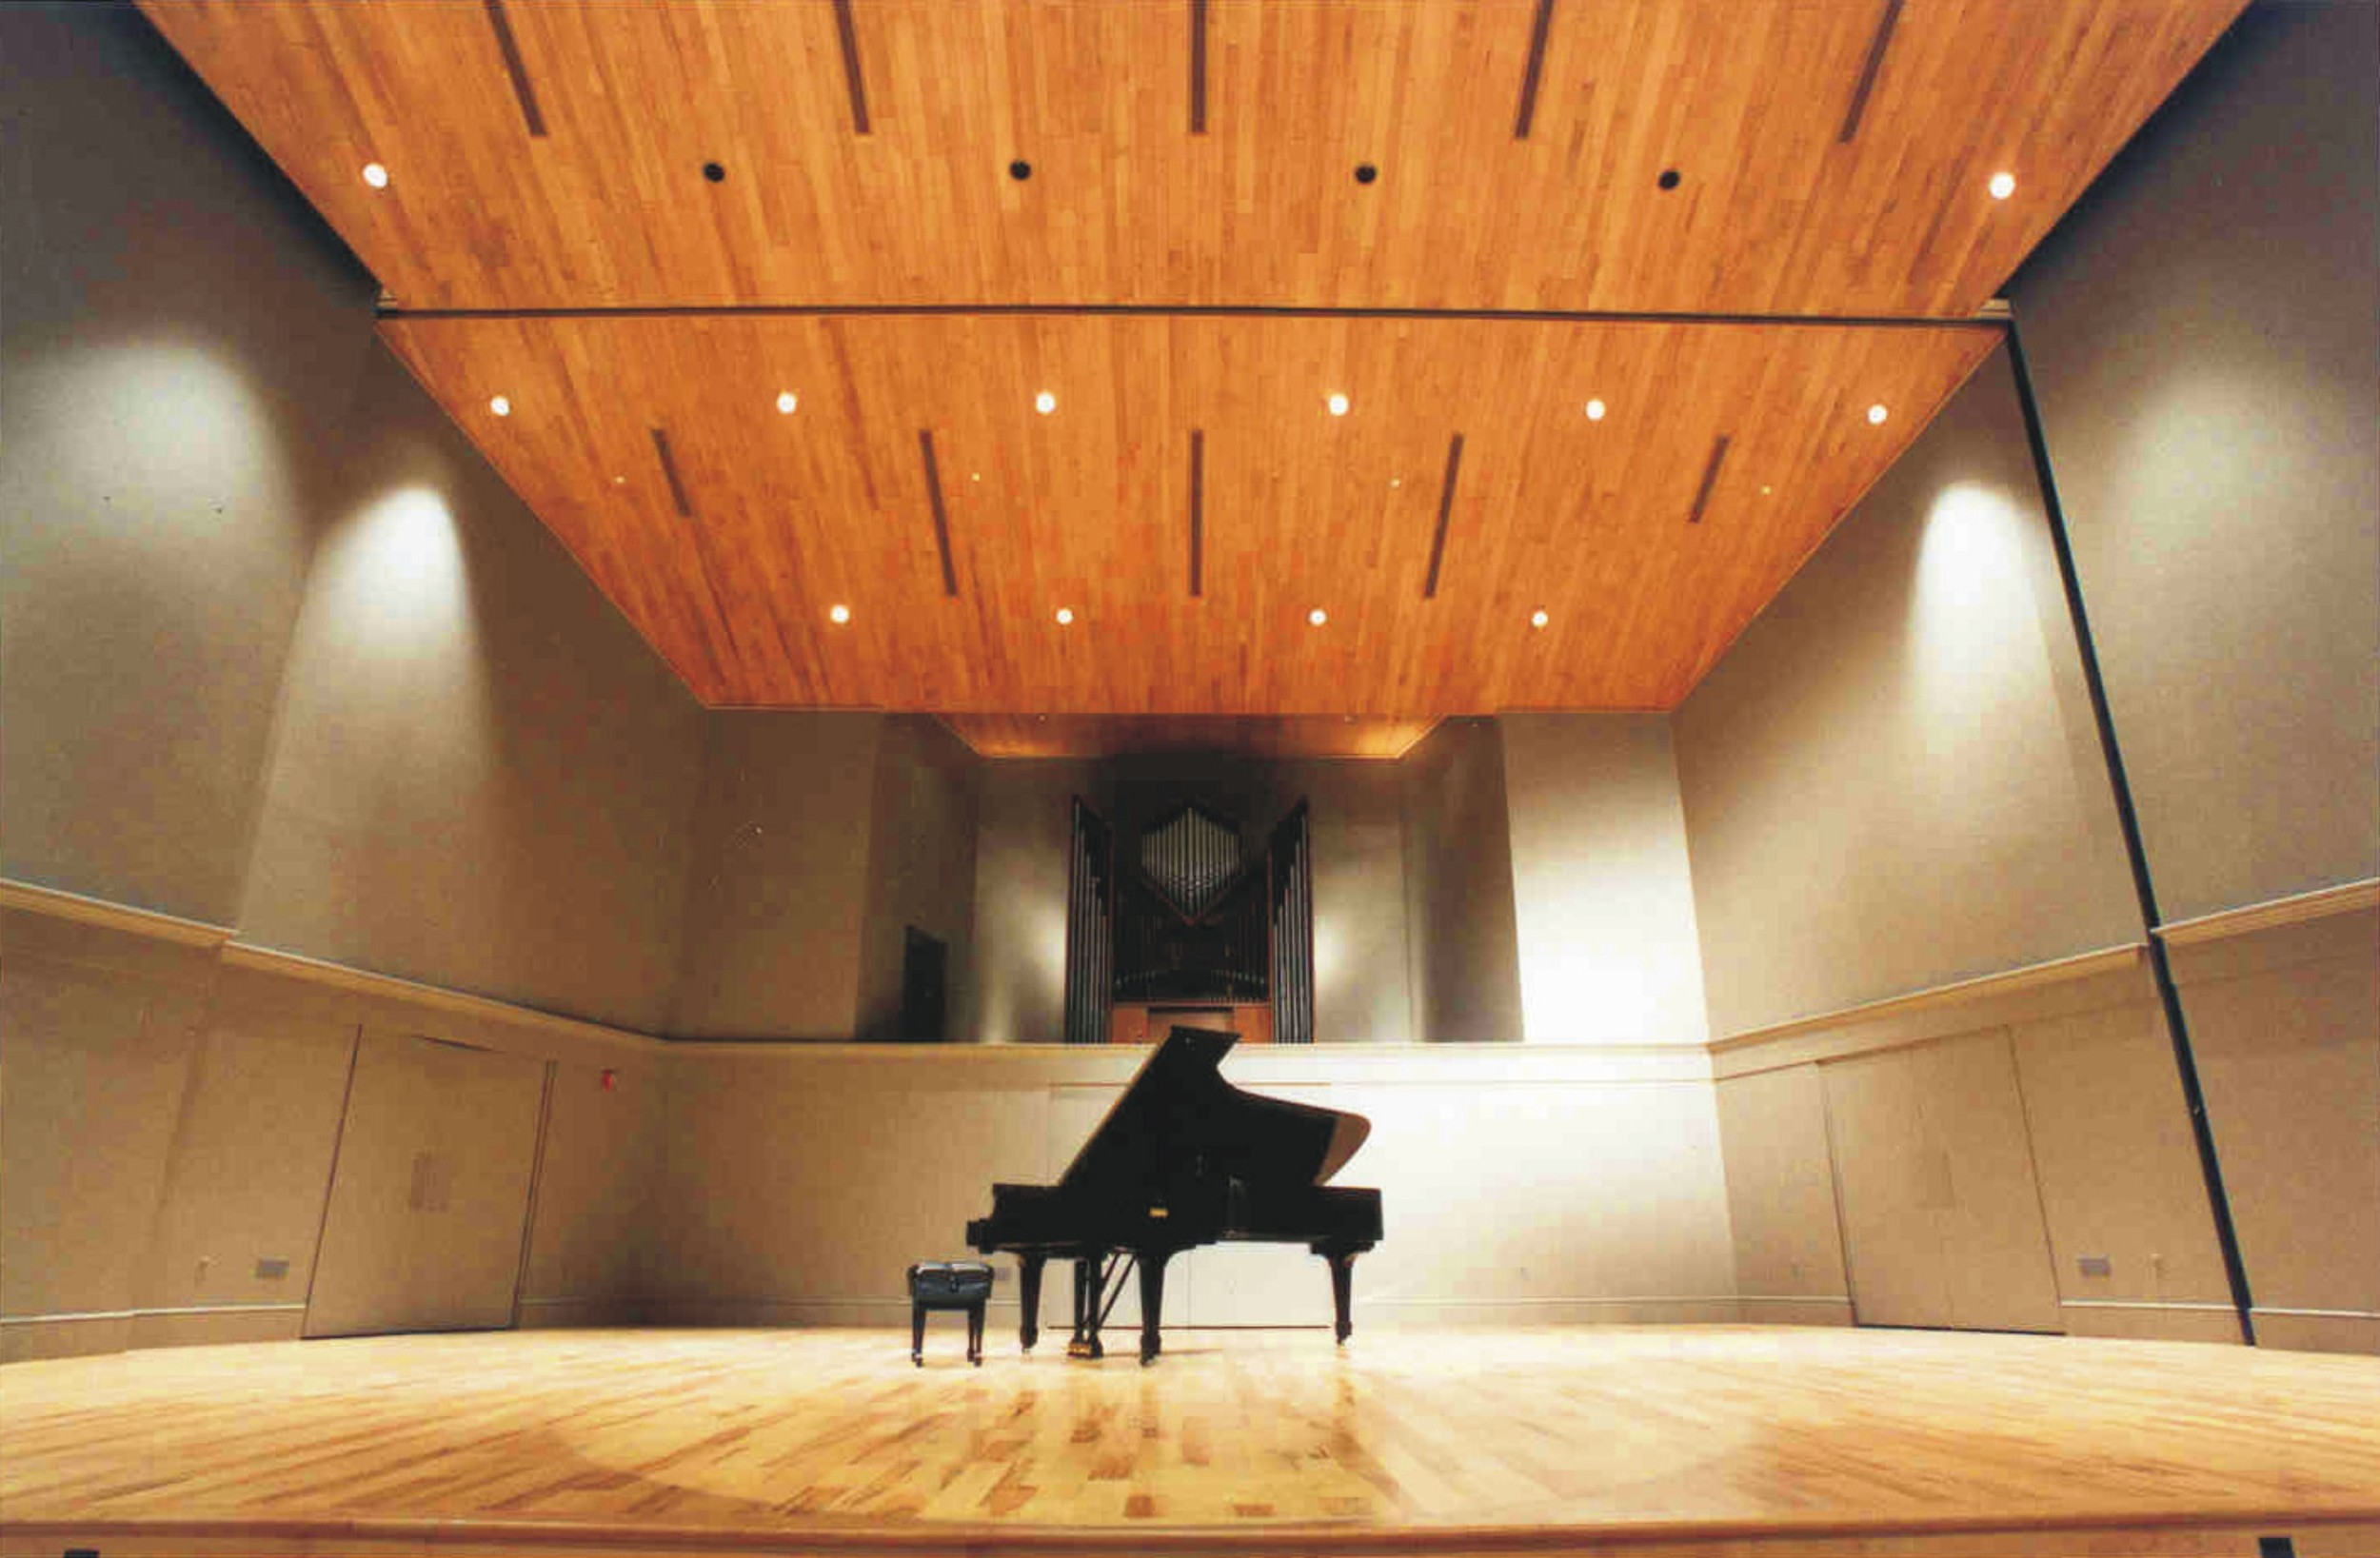 www.rcmarchitects.com - bluffton university - yoder recital hall (2)